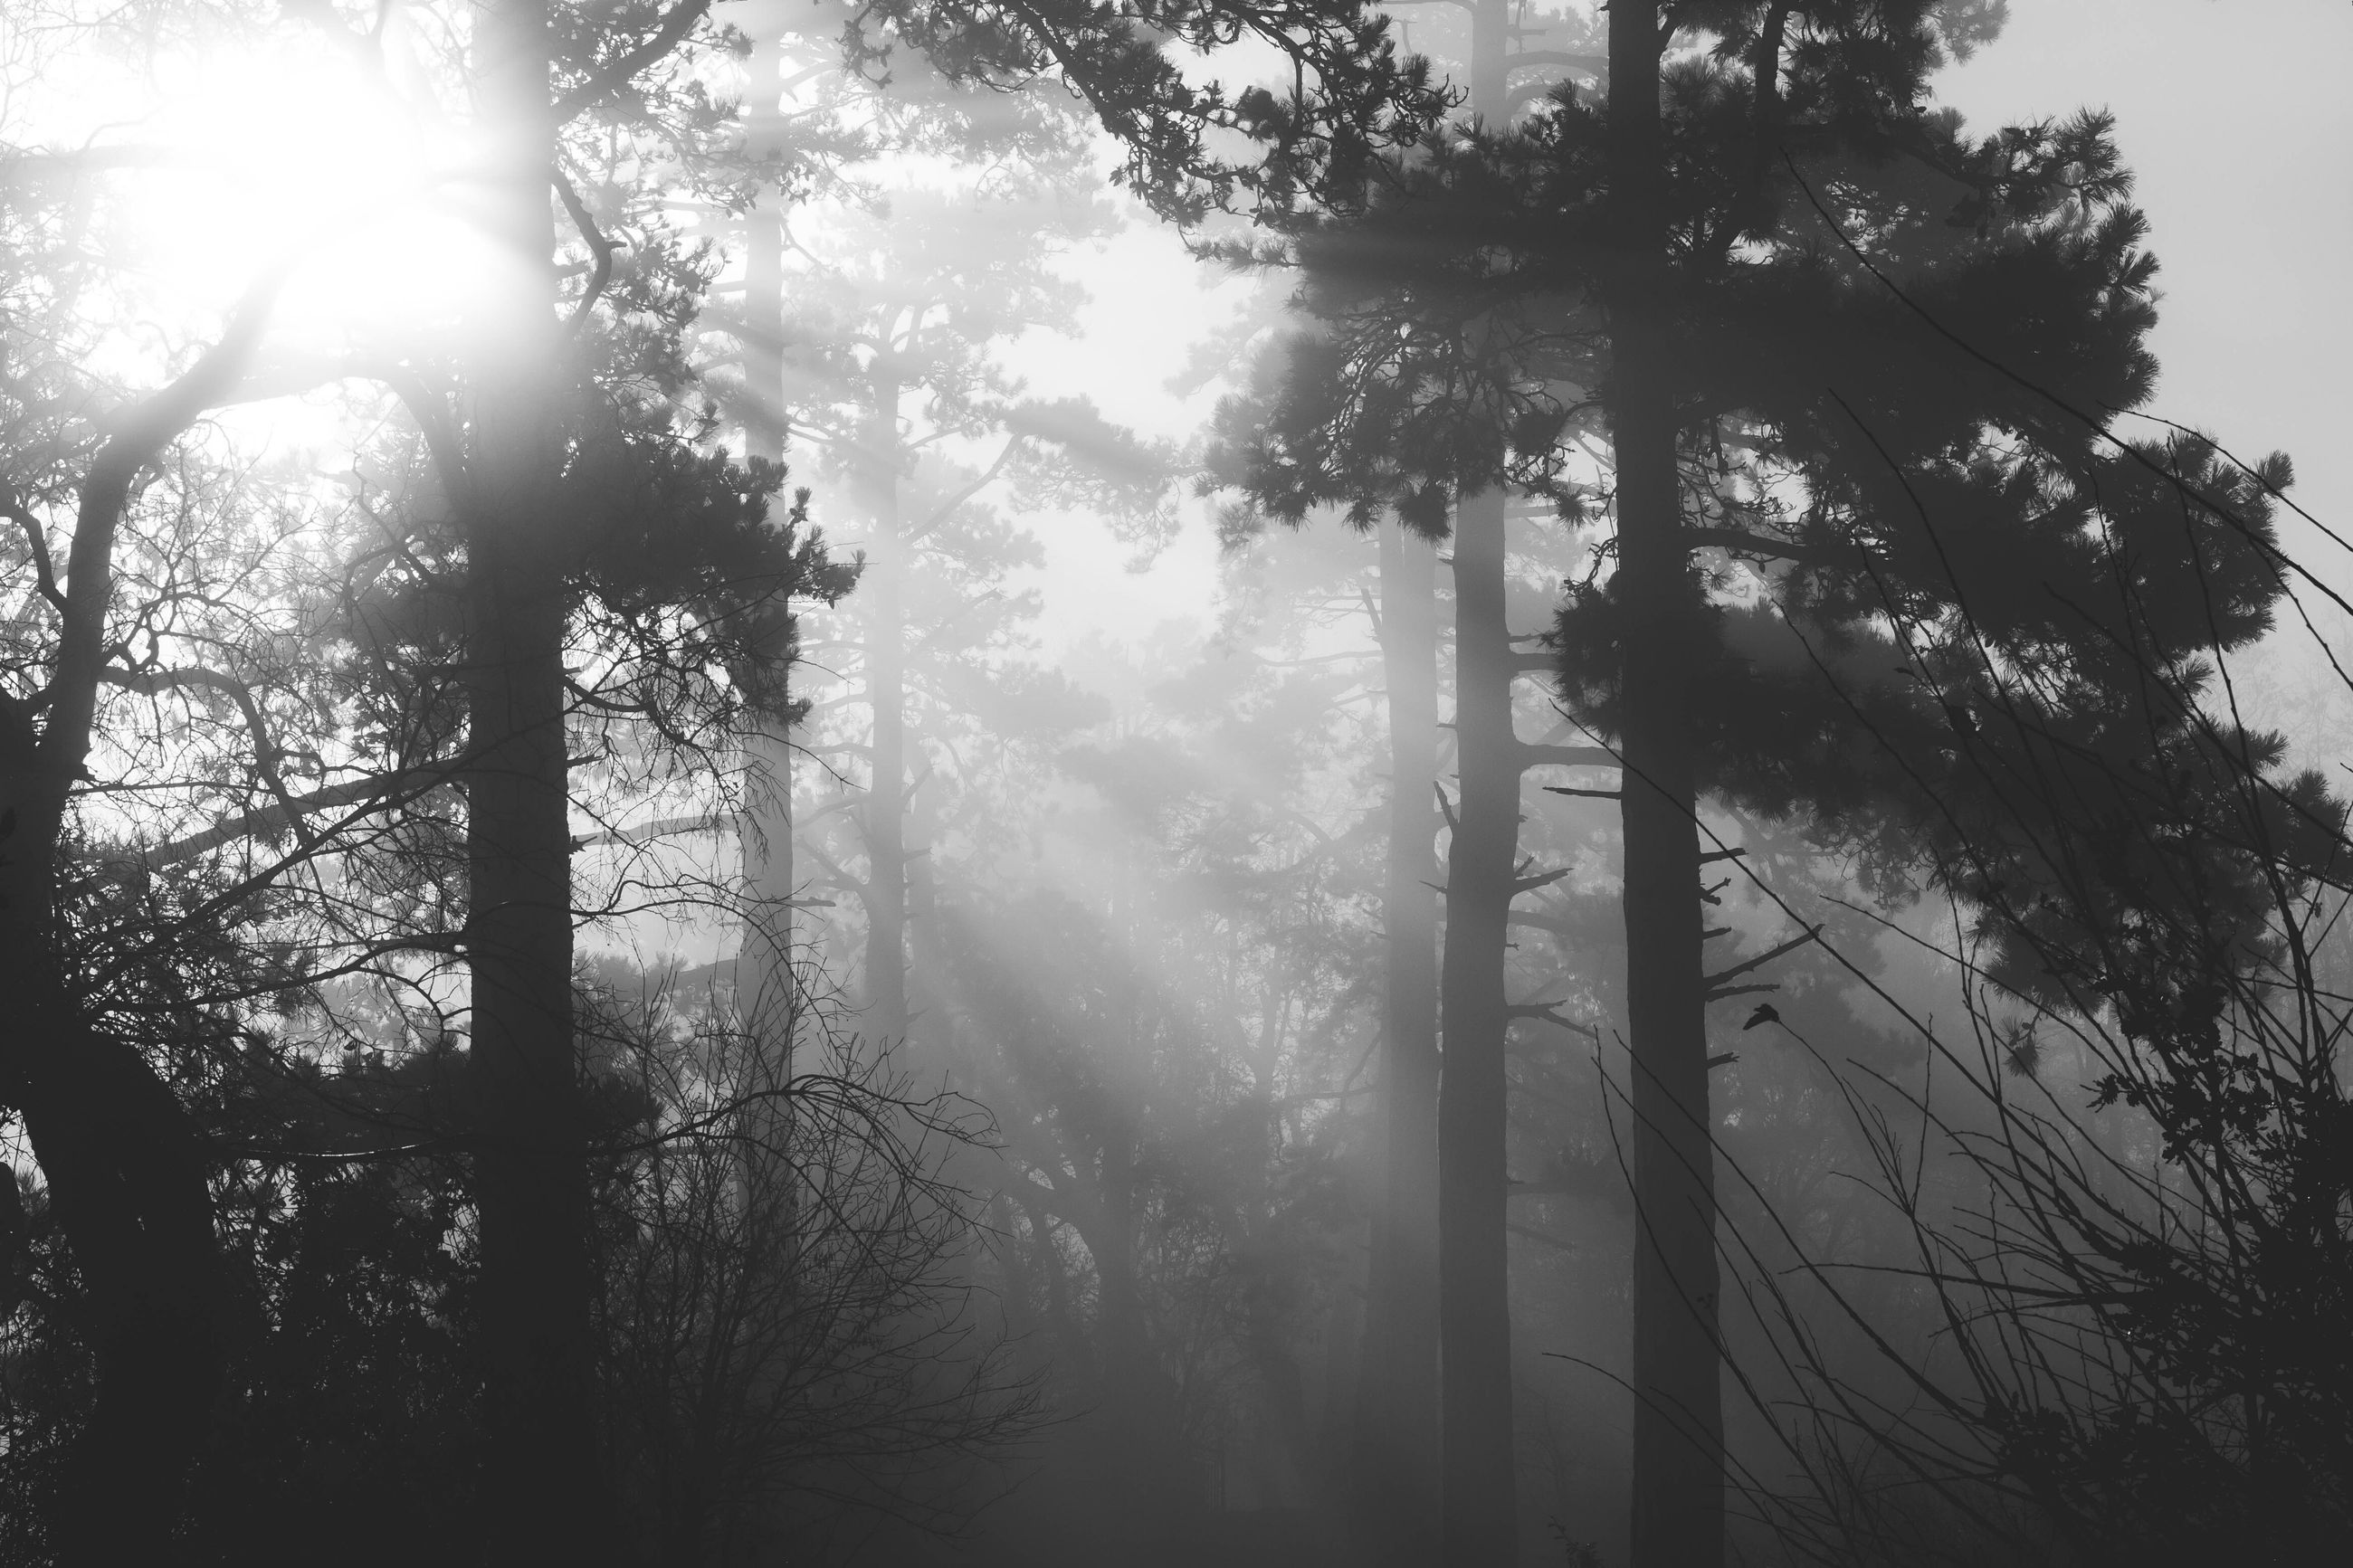 tree, sun, sunbeam, sunlight, tranquility, lens flare, tranquil scene, beauty in nature, nature, scenics, forest, silhouette, growth, tree trunk, branch, fog, back lit, bright, idyllic, no people